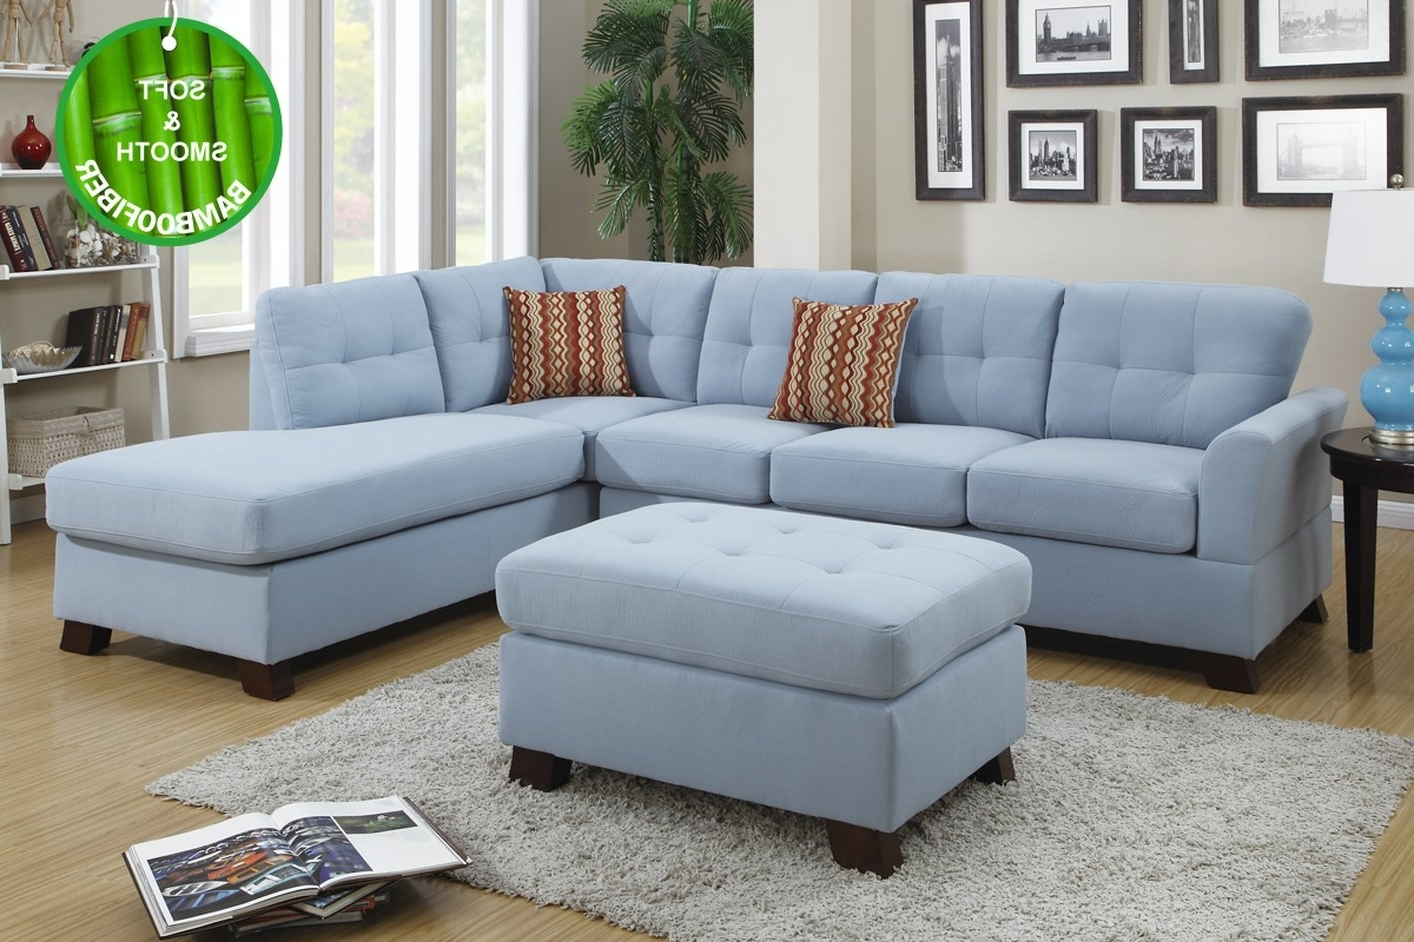 Good Blue Sectional Sofa 45 Modern Sofa Inspiration With Blue In Most Current Blue Sectional Sofas (View 12 of 20)